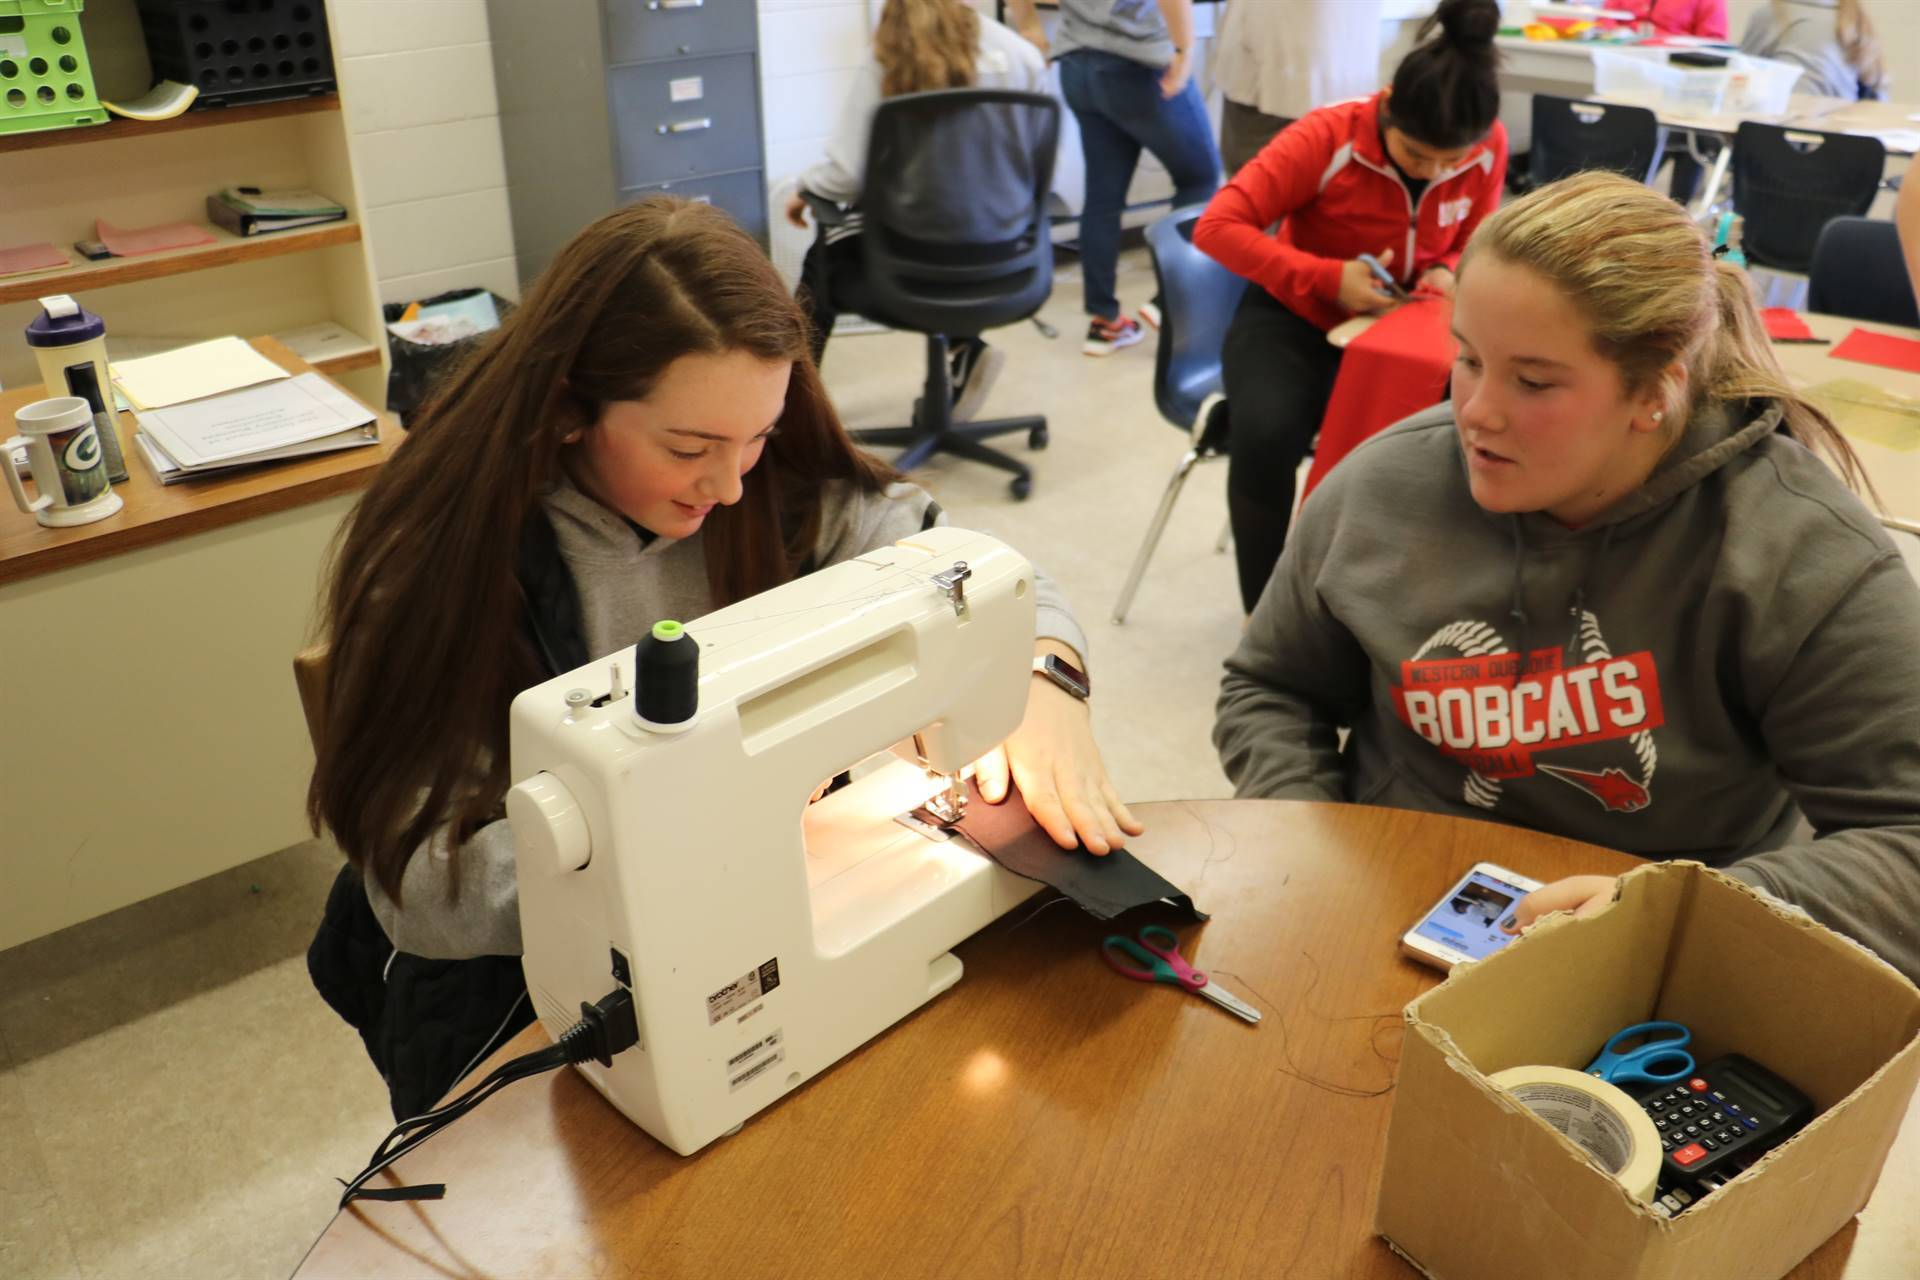 High school students working on sewing project